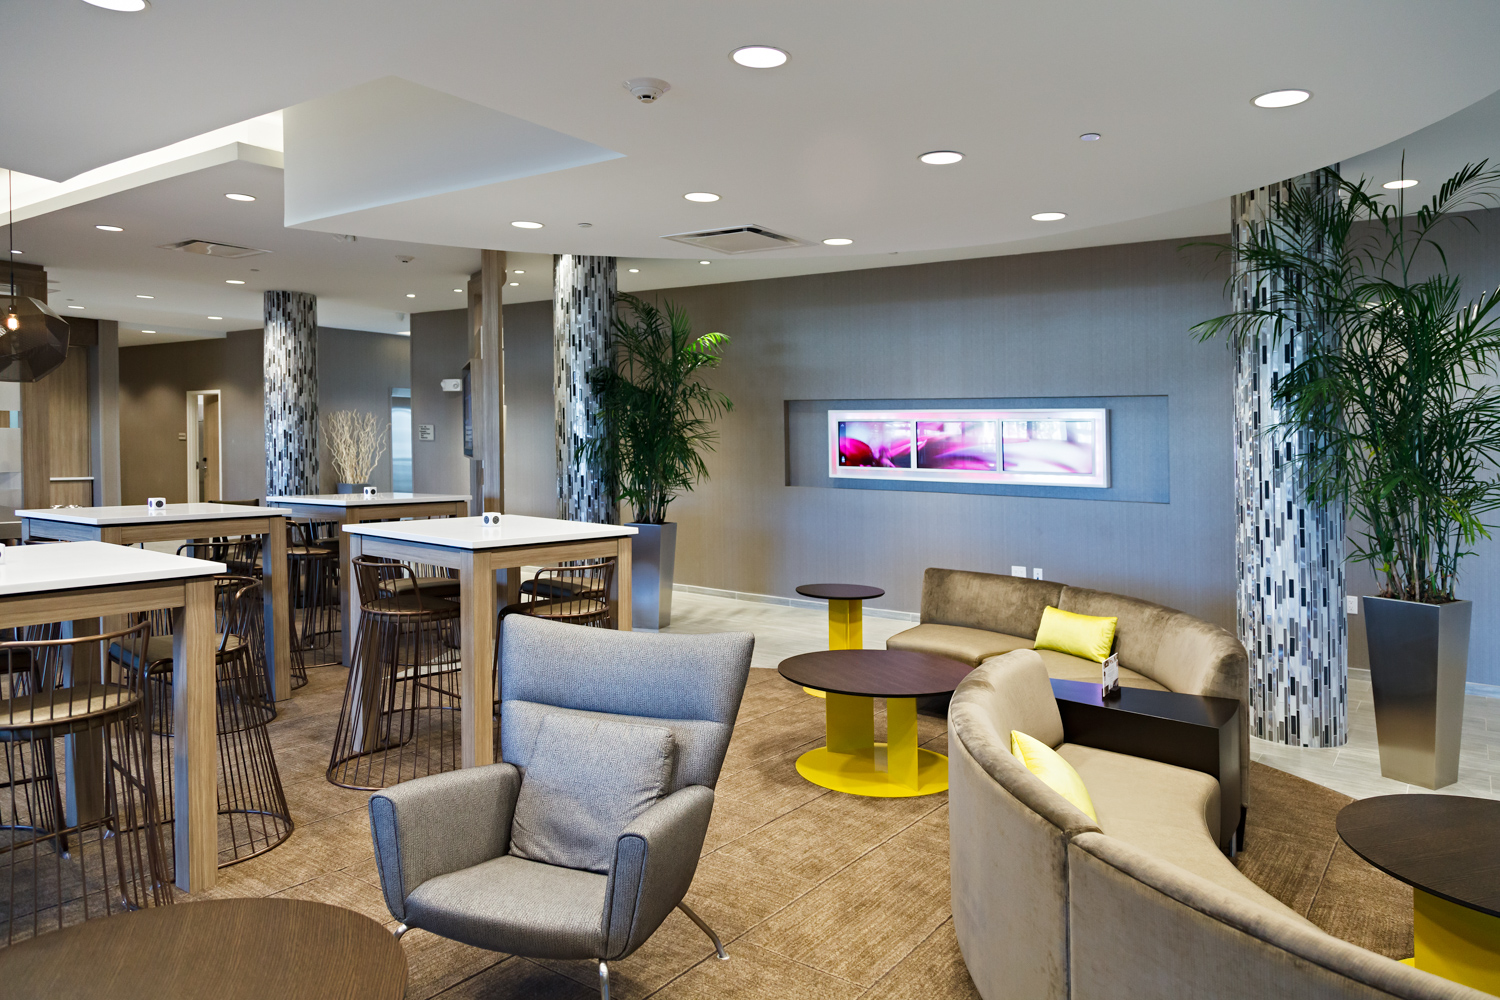 marriott-springhill-suites-somerset-new-jersey-main-lobby-2